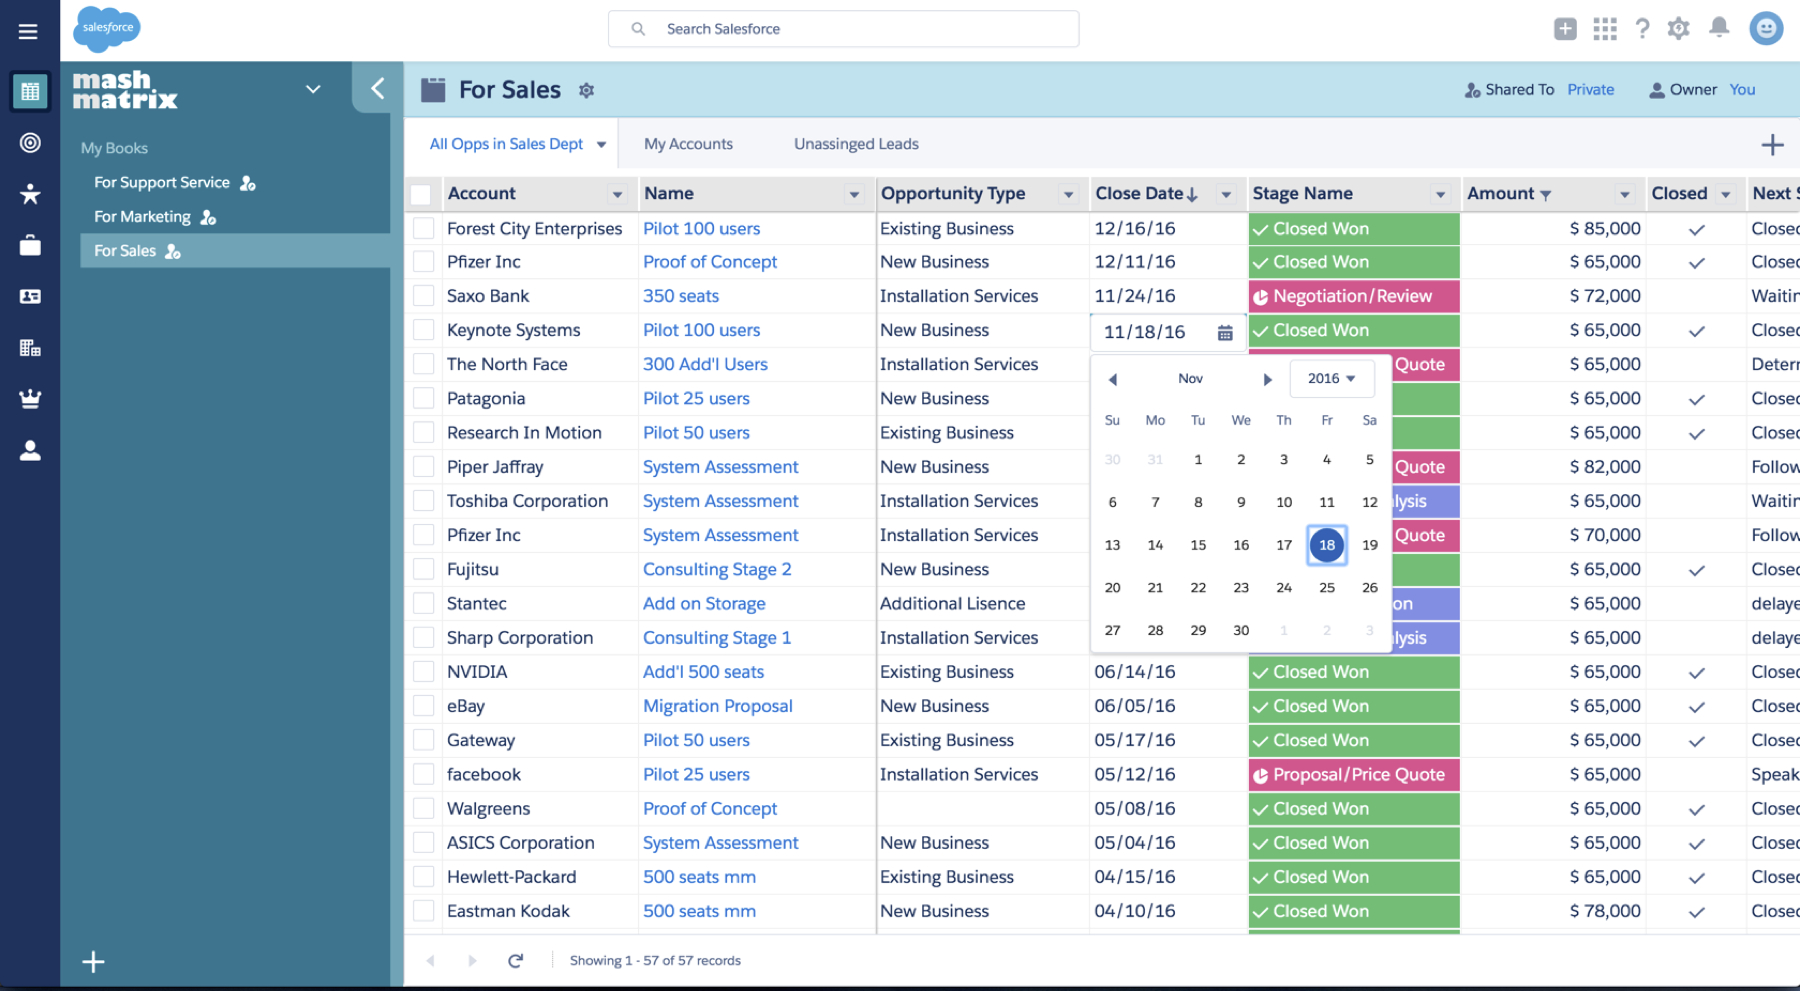 Mashmatrix Released Excel Like Web App For Salesforce Crm Data With Convert Spreadsheet To Web Application